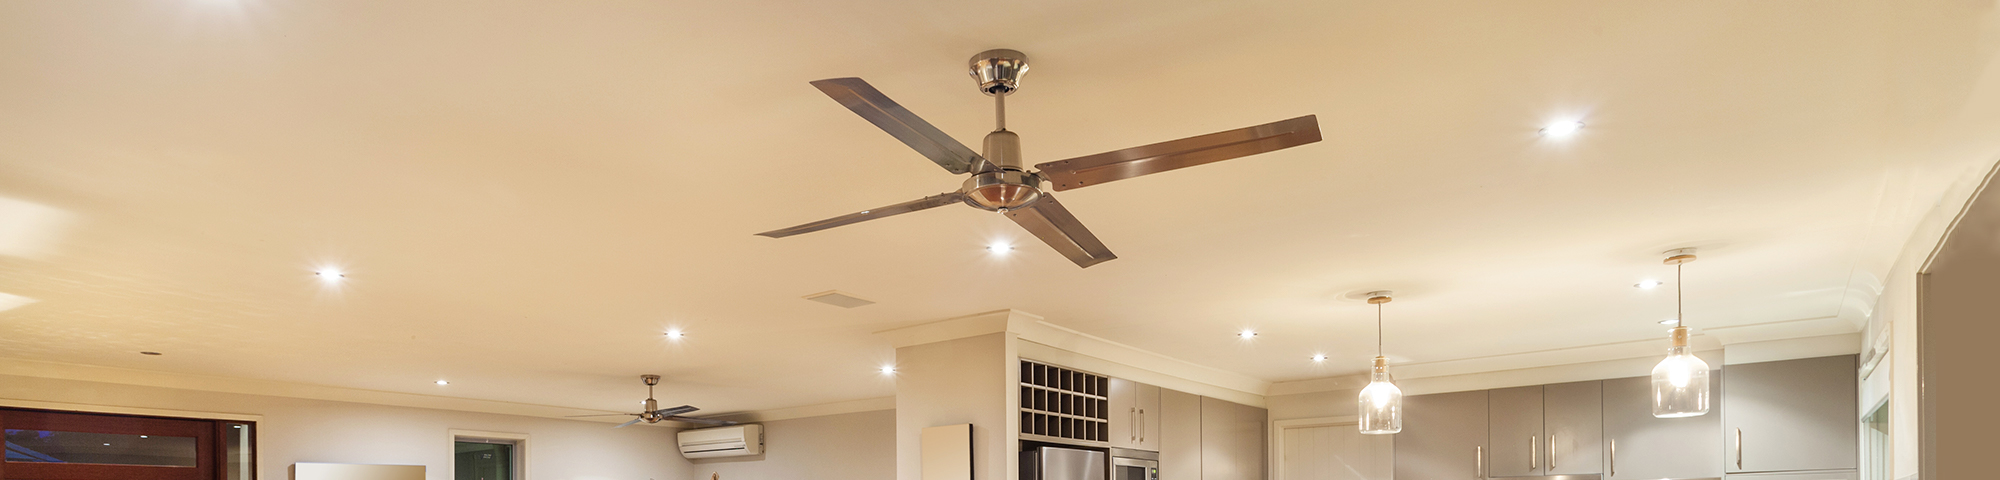 Best Ceiling Fans For Small Rooms Best Ceiling Fans 2019 Reviews Of Indoor Fans And Brands Top